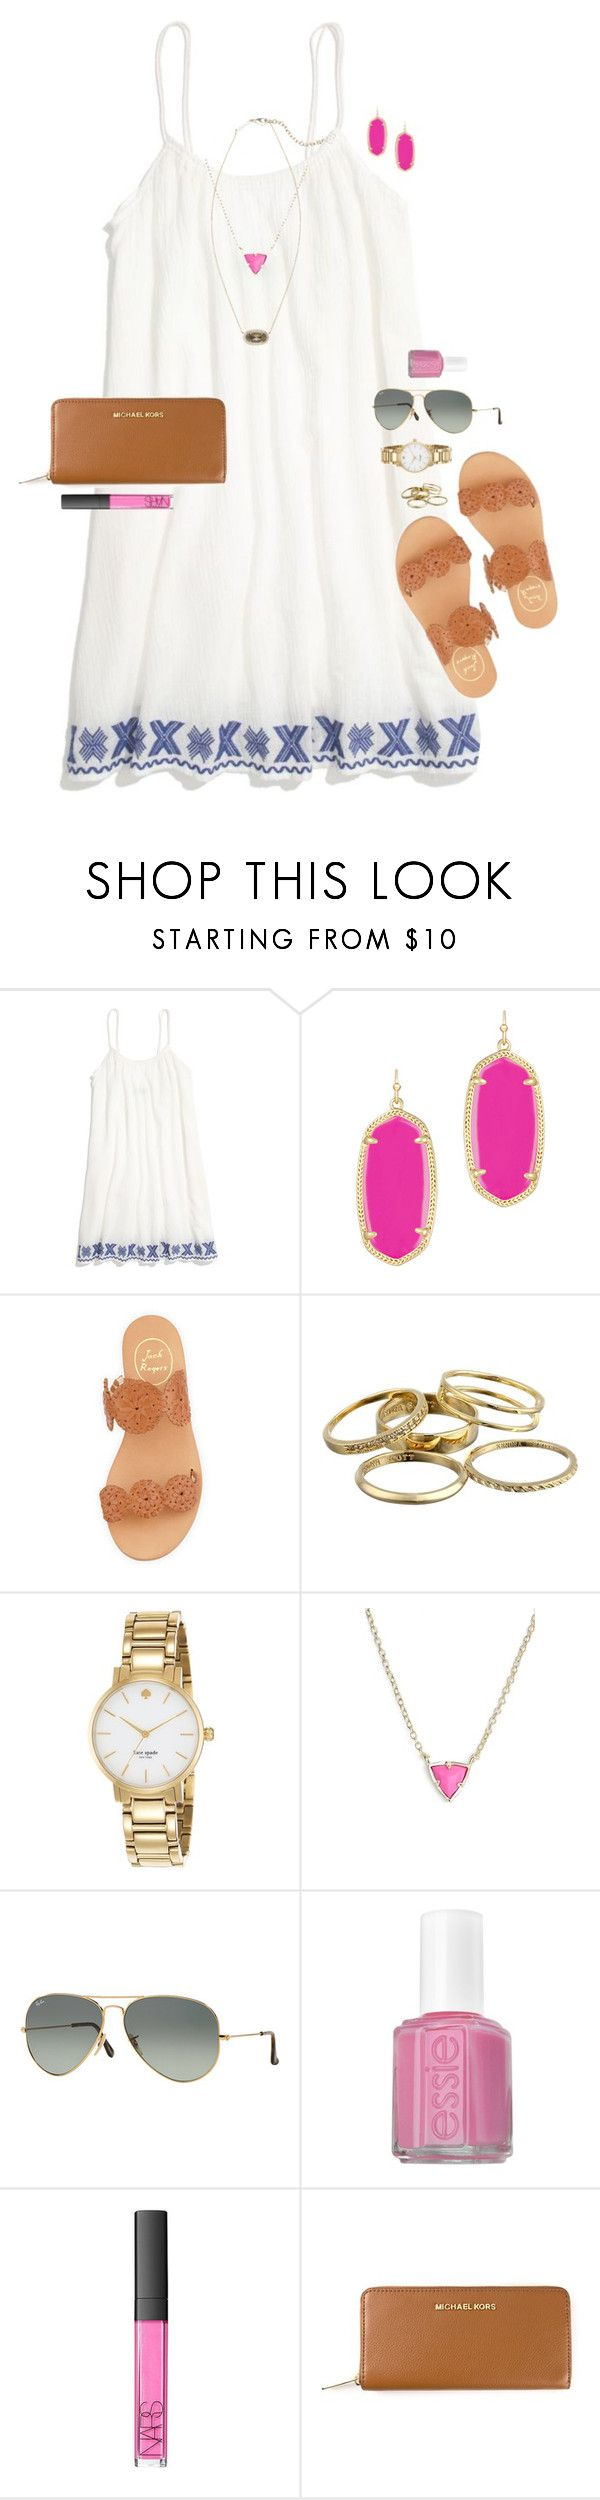 """""""so sorry this is late, but happy easter y'all!!"""" by smbprep ❤ liked on Polyvore featuring Madewell, Kendra Scott, Jack Rogers, Kate Spade, Ray-Ban, Essie, NARS Cosmetics and MICHAEL Michael Kors"""